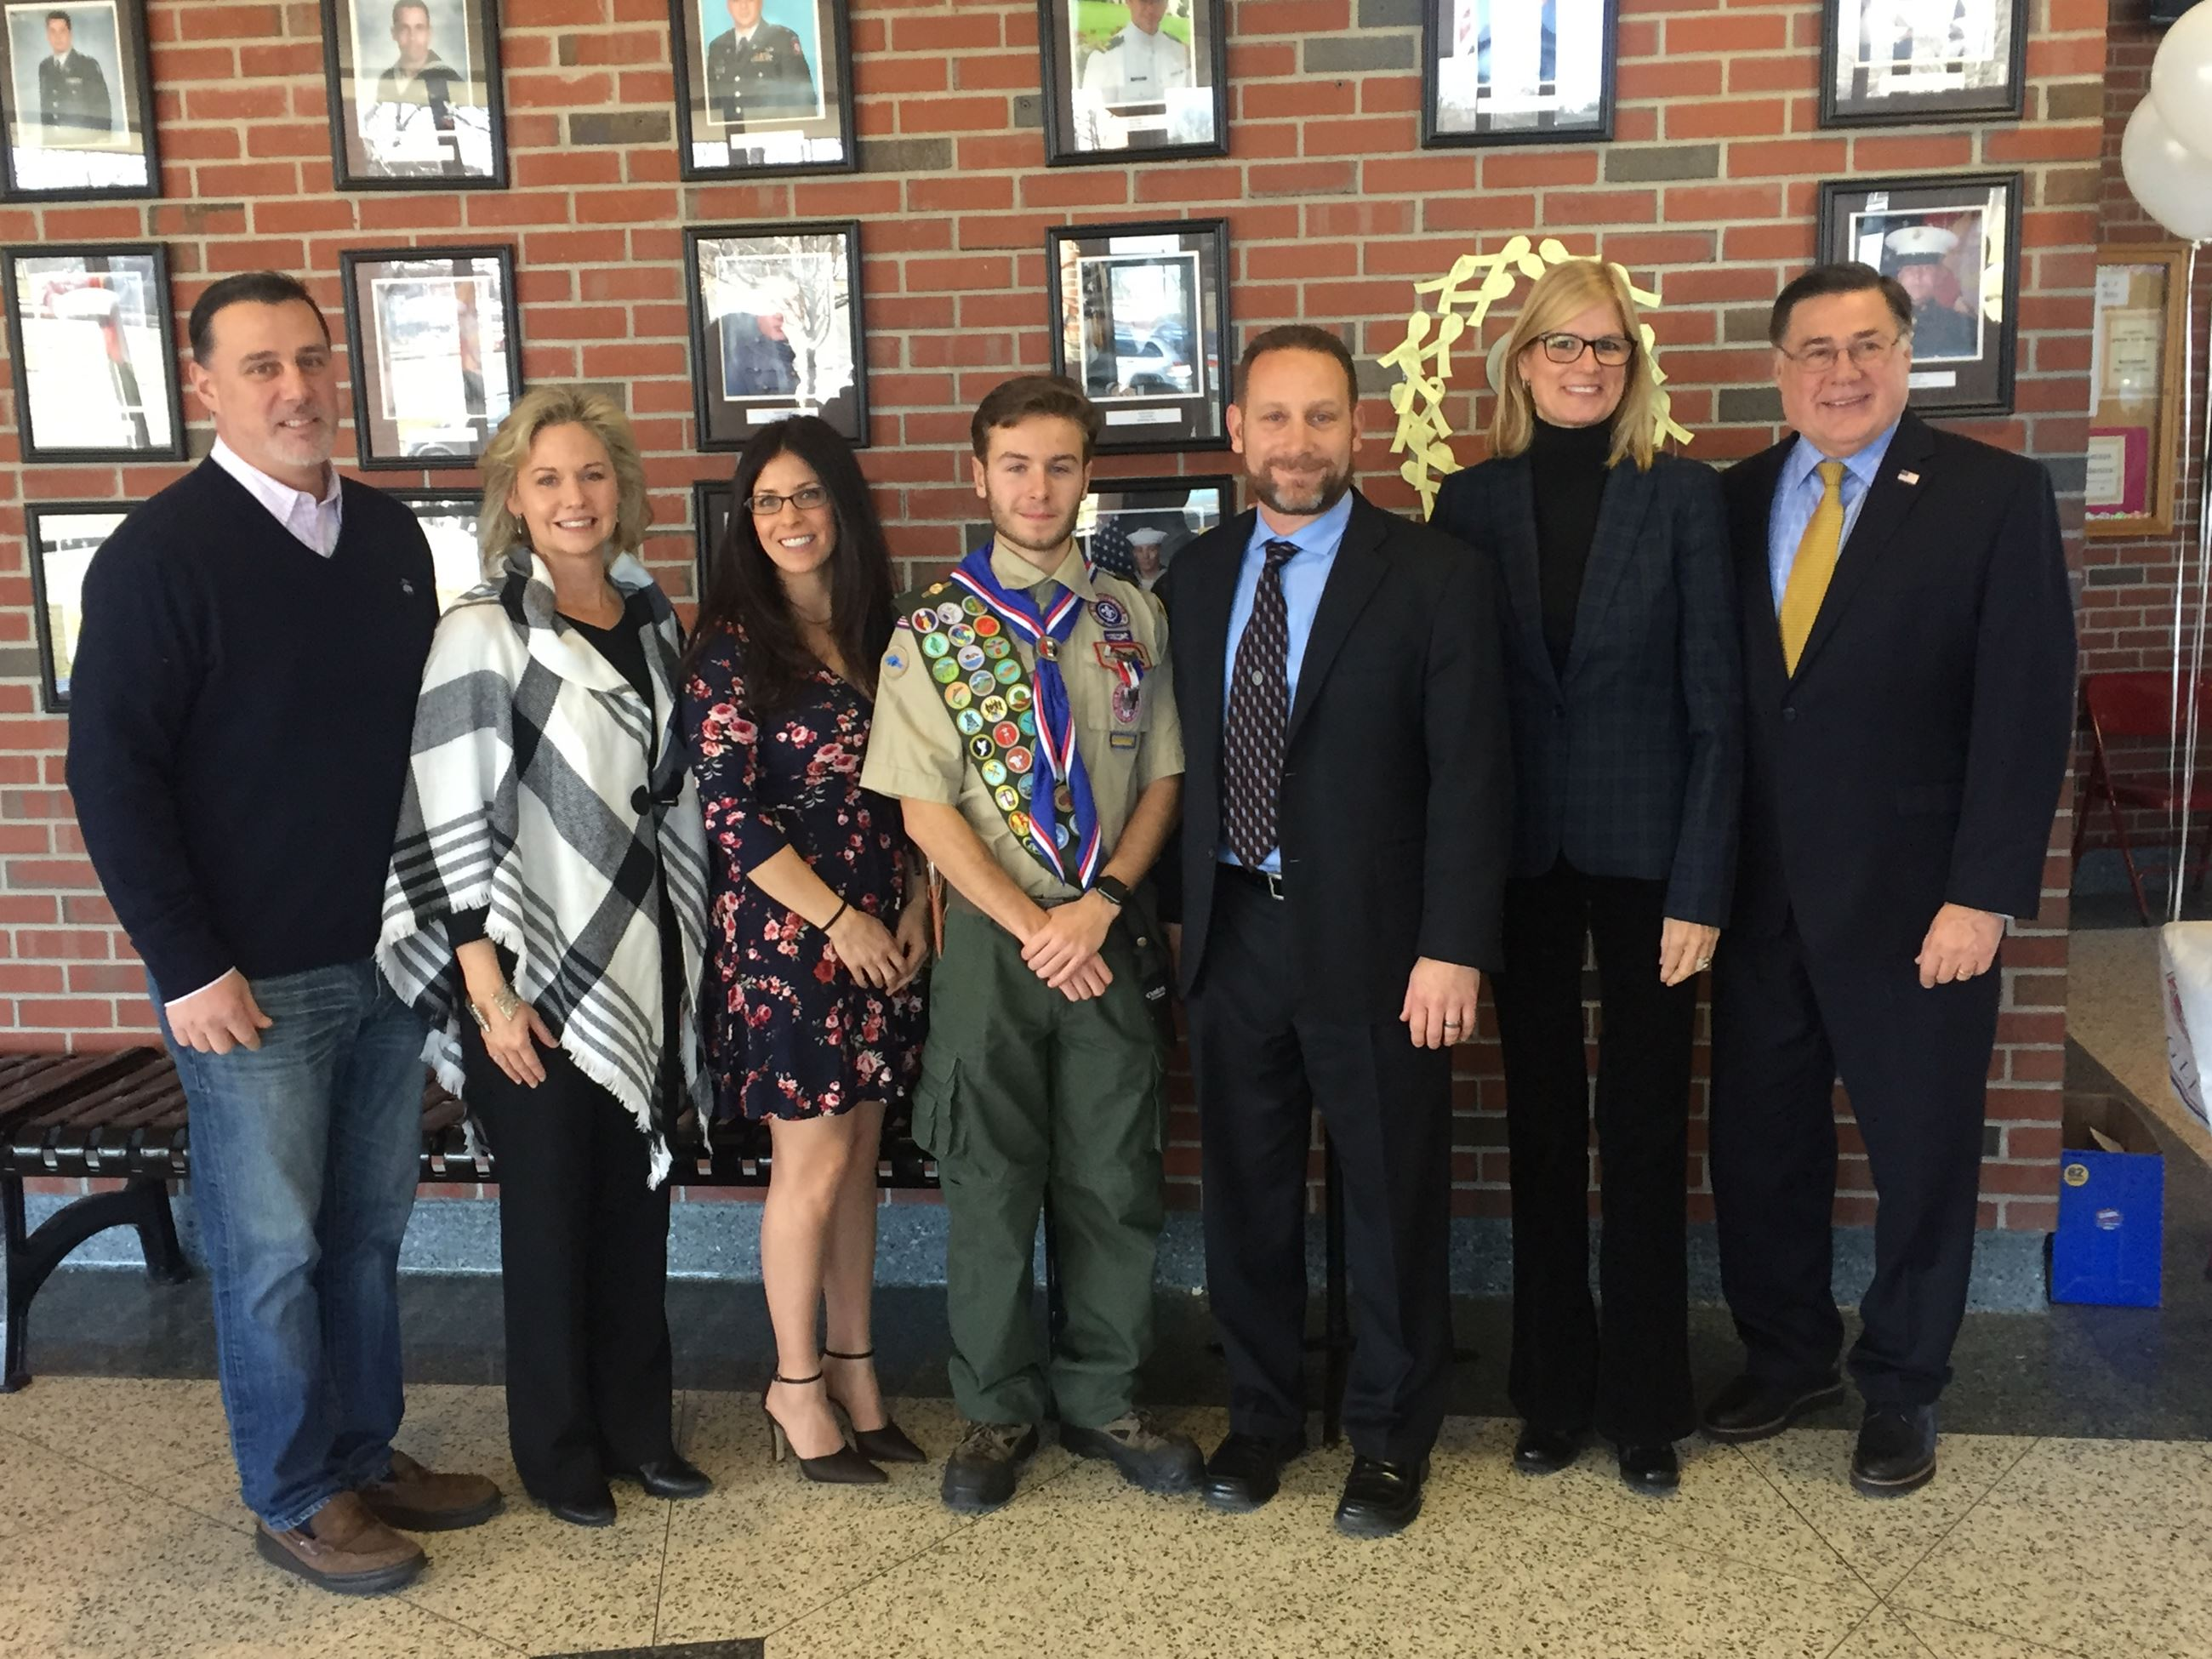 Legislator Anker and elected officials with Eagle Scout James Snider and his parents, James and Kim